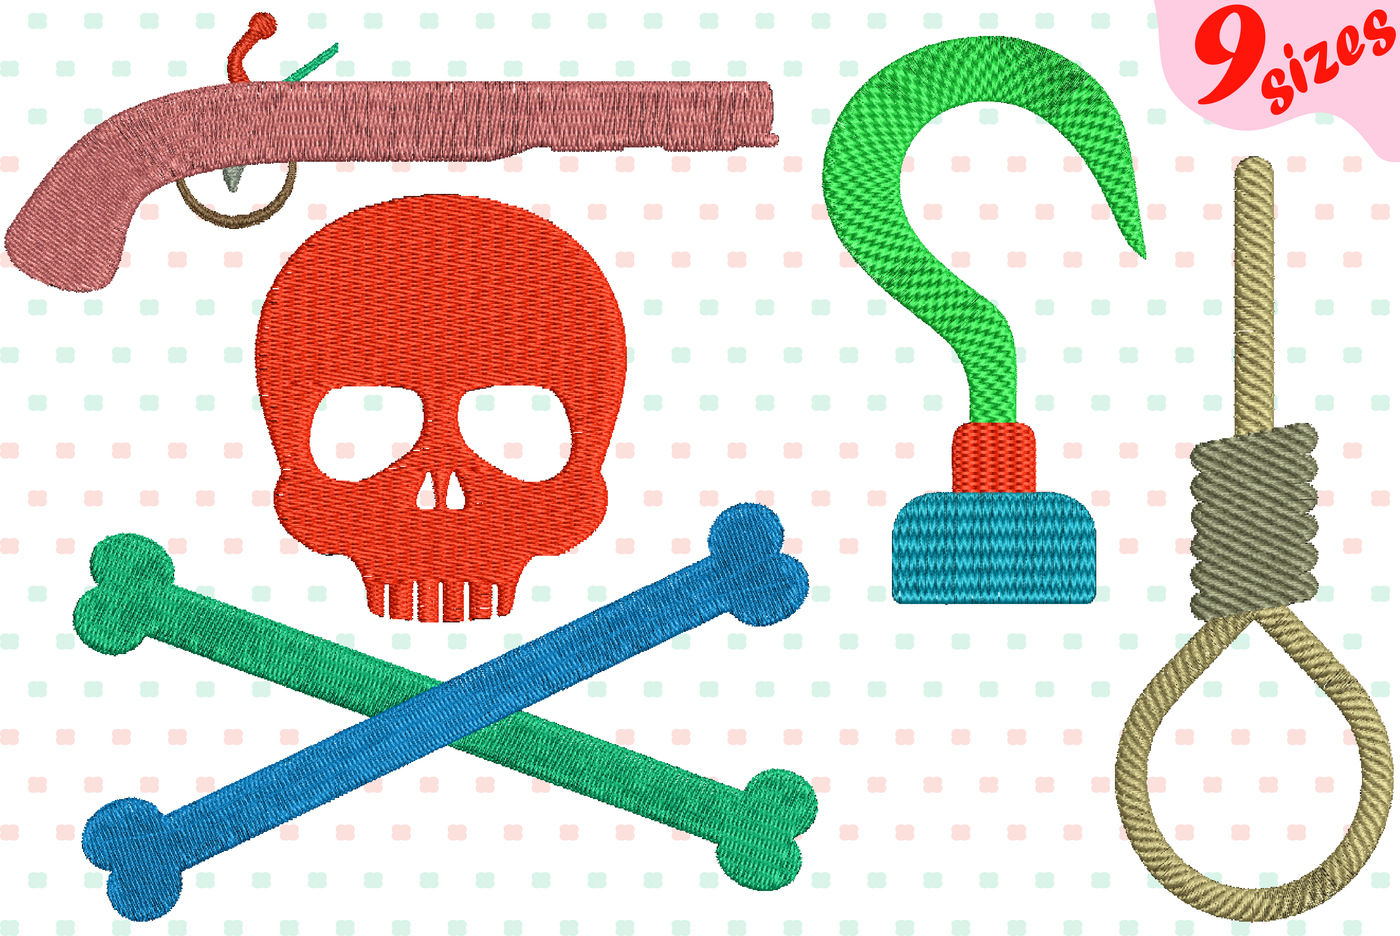 Nautical Embroidery Patterns Pirates Embroidery Design Machine Instant Download Commercial Use